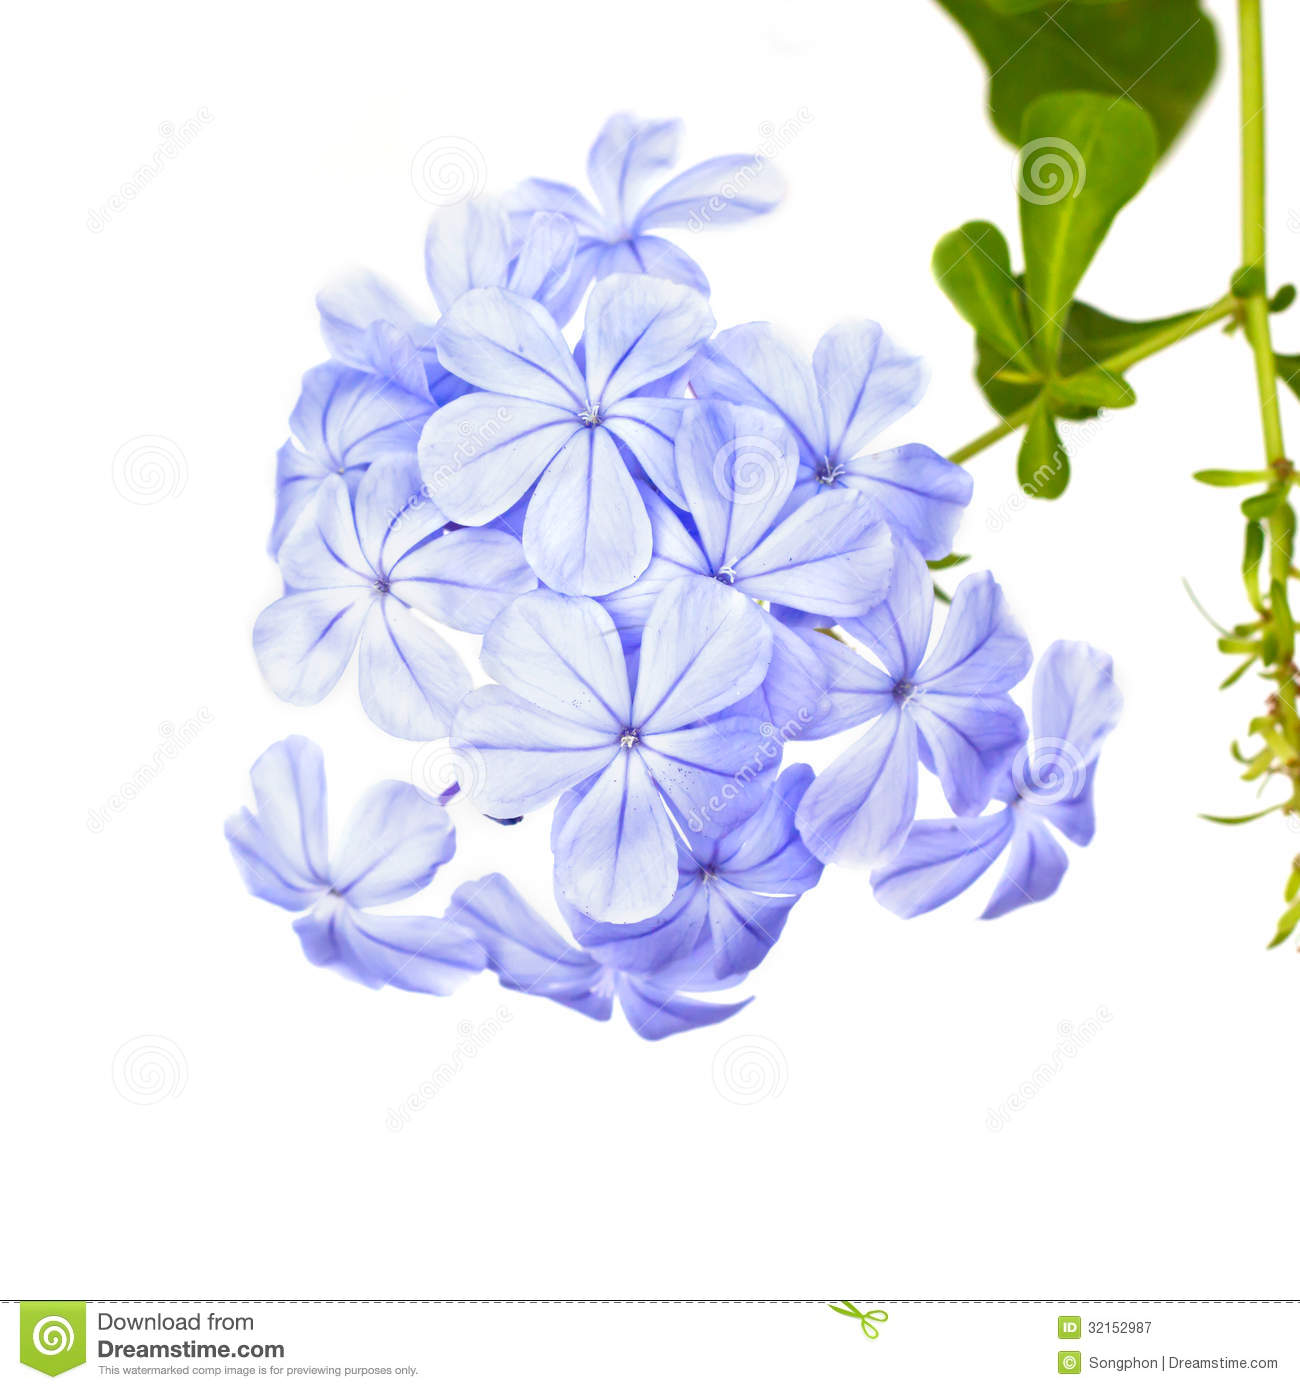 Plumbago Auriculata Lam Flower Royalty Free Stock Photography.